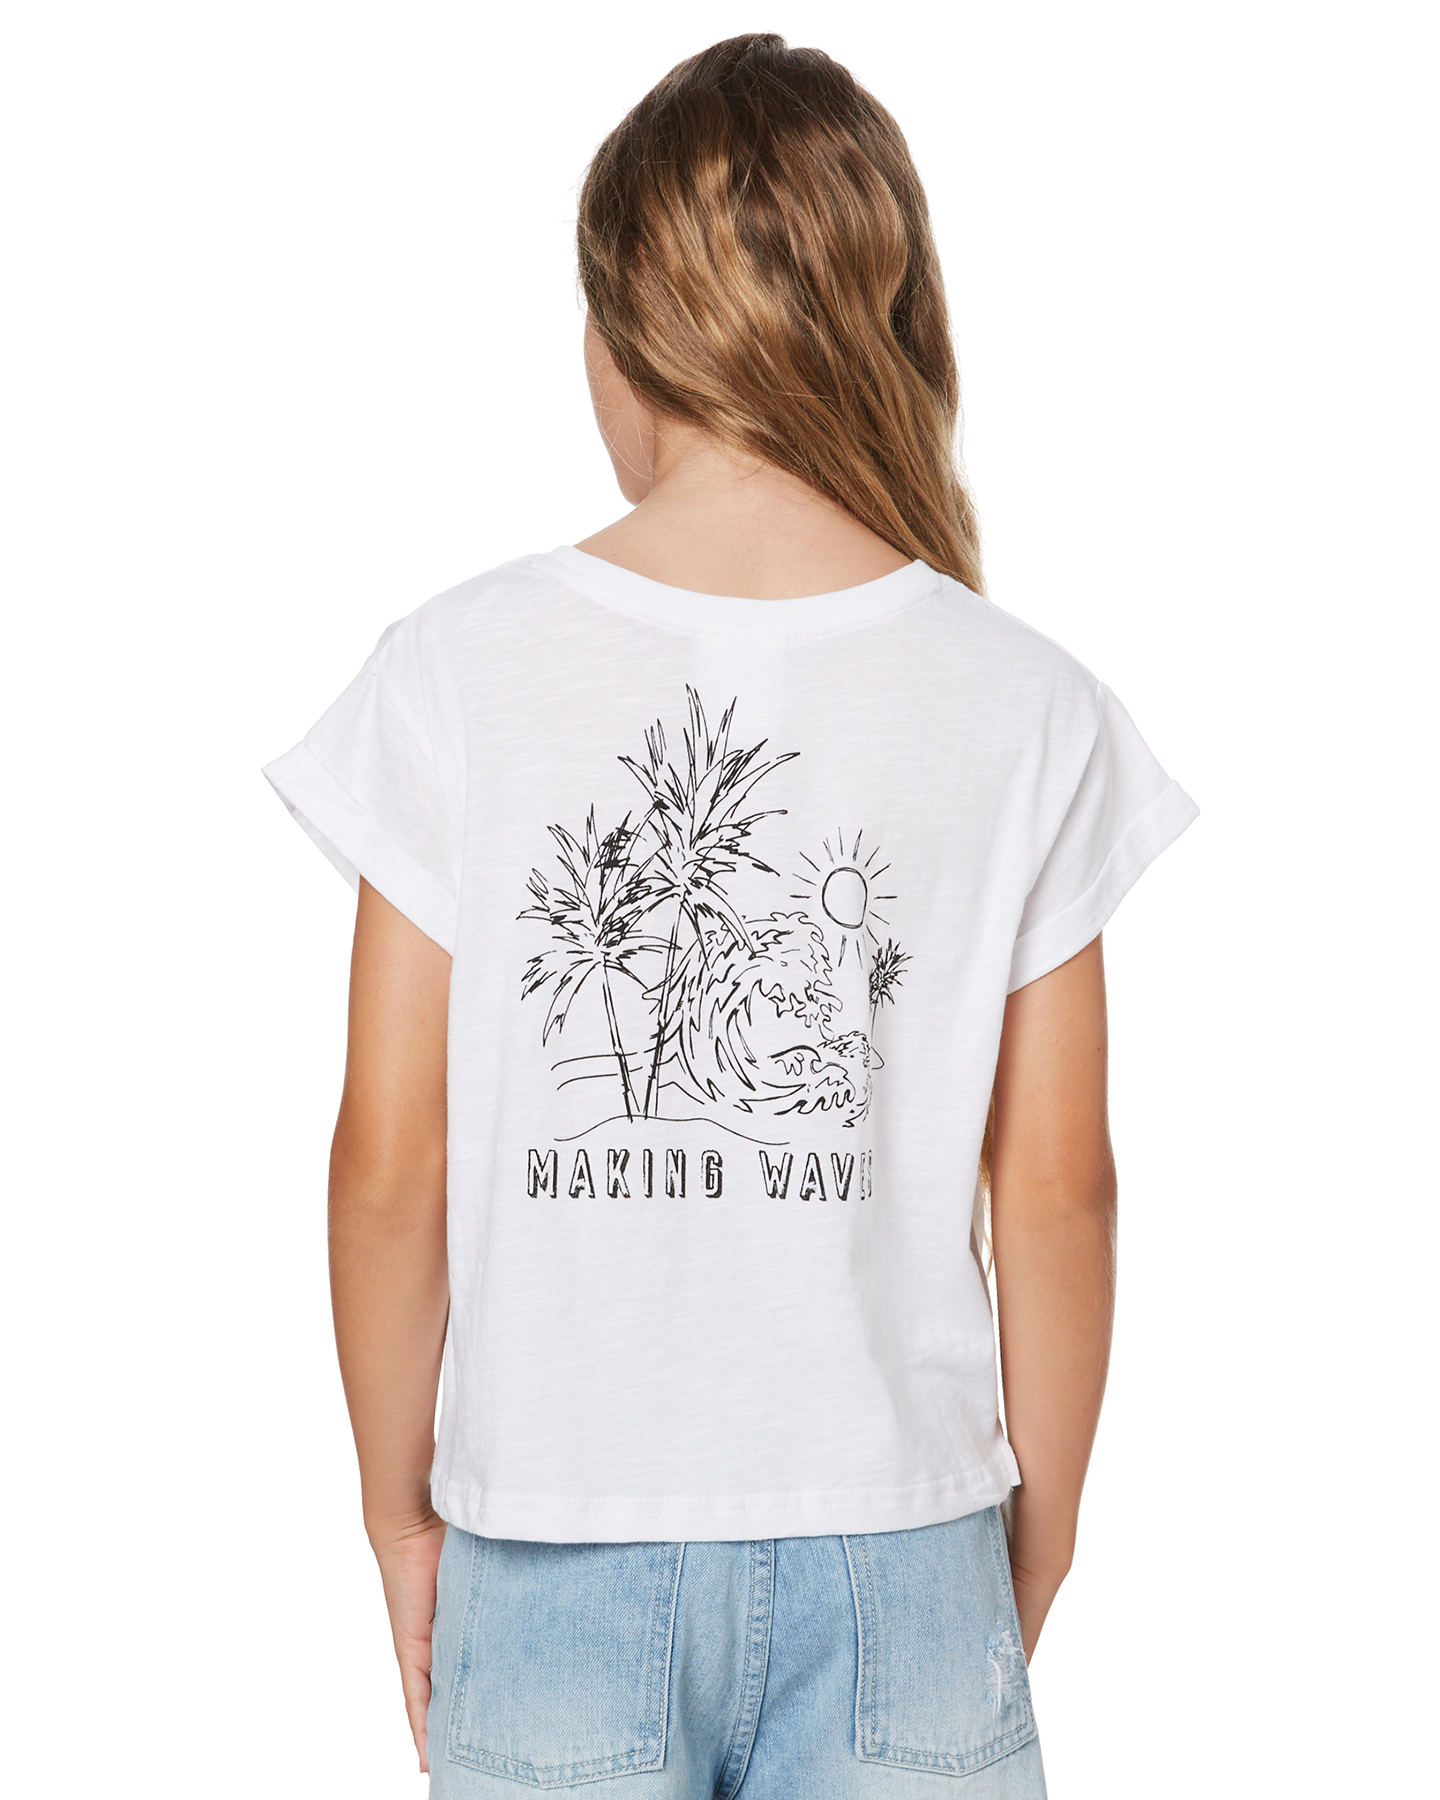 Eves Sister Girls Sunny Days Tee - Teens White